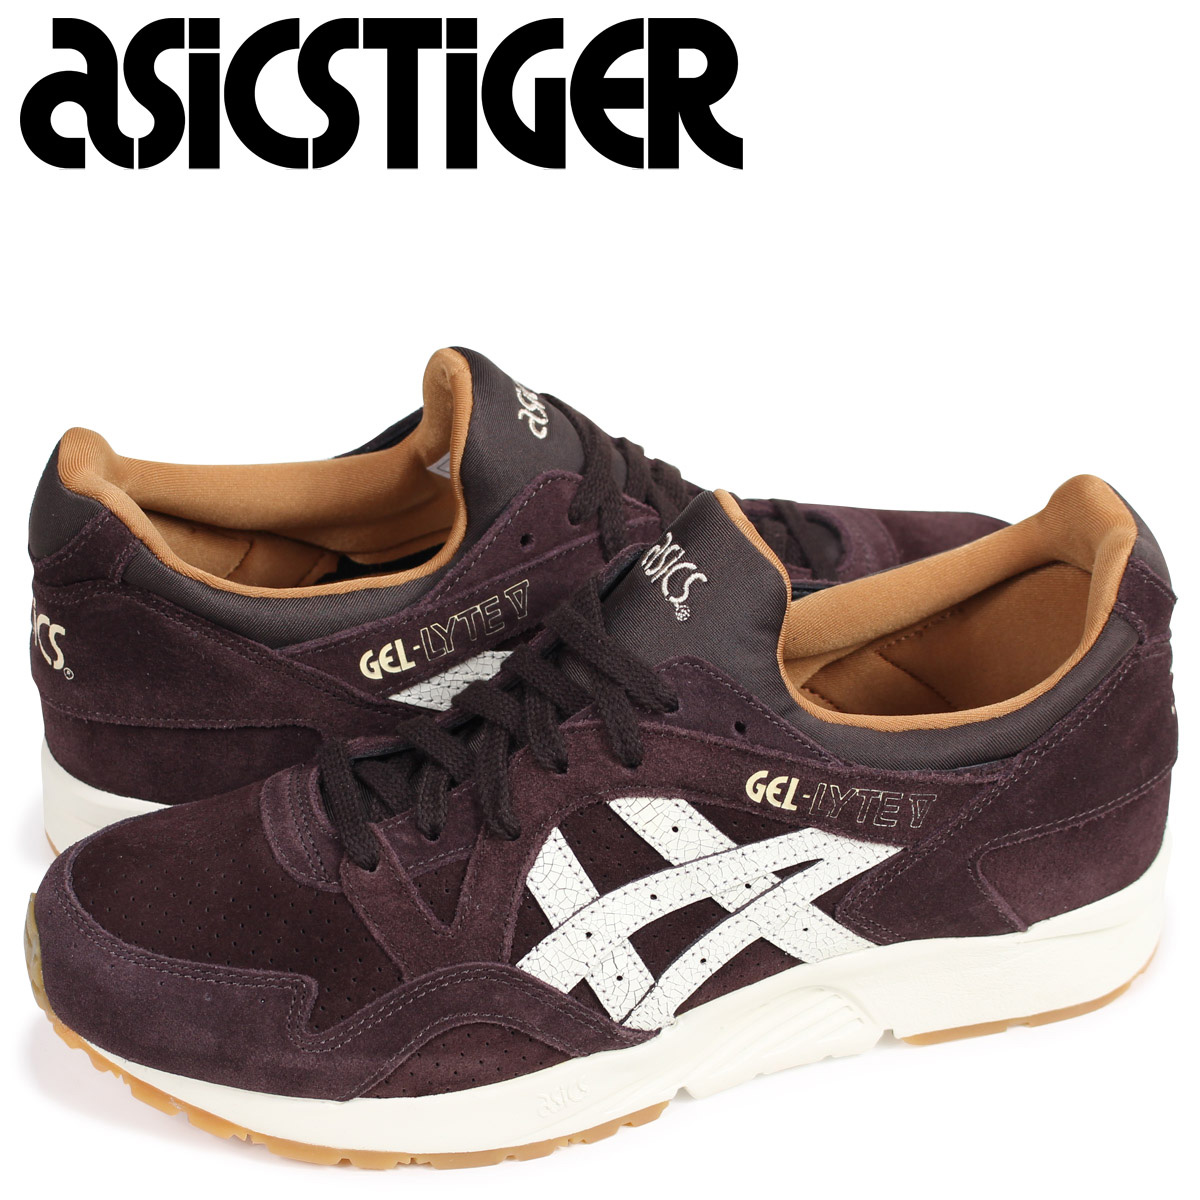 reputable site edfe2 2b845 ASICS tiger asics Tiger gel light 5 sneakers GEL-LYTE V H8E4L-2900 men brown